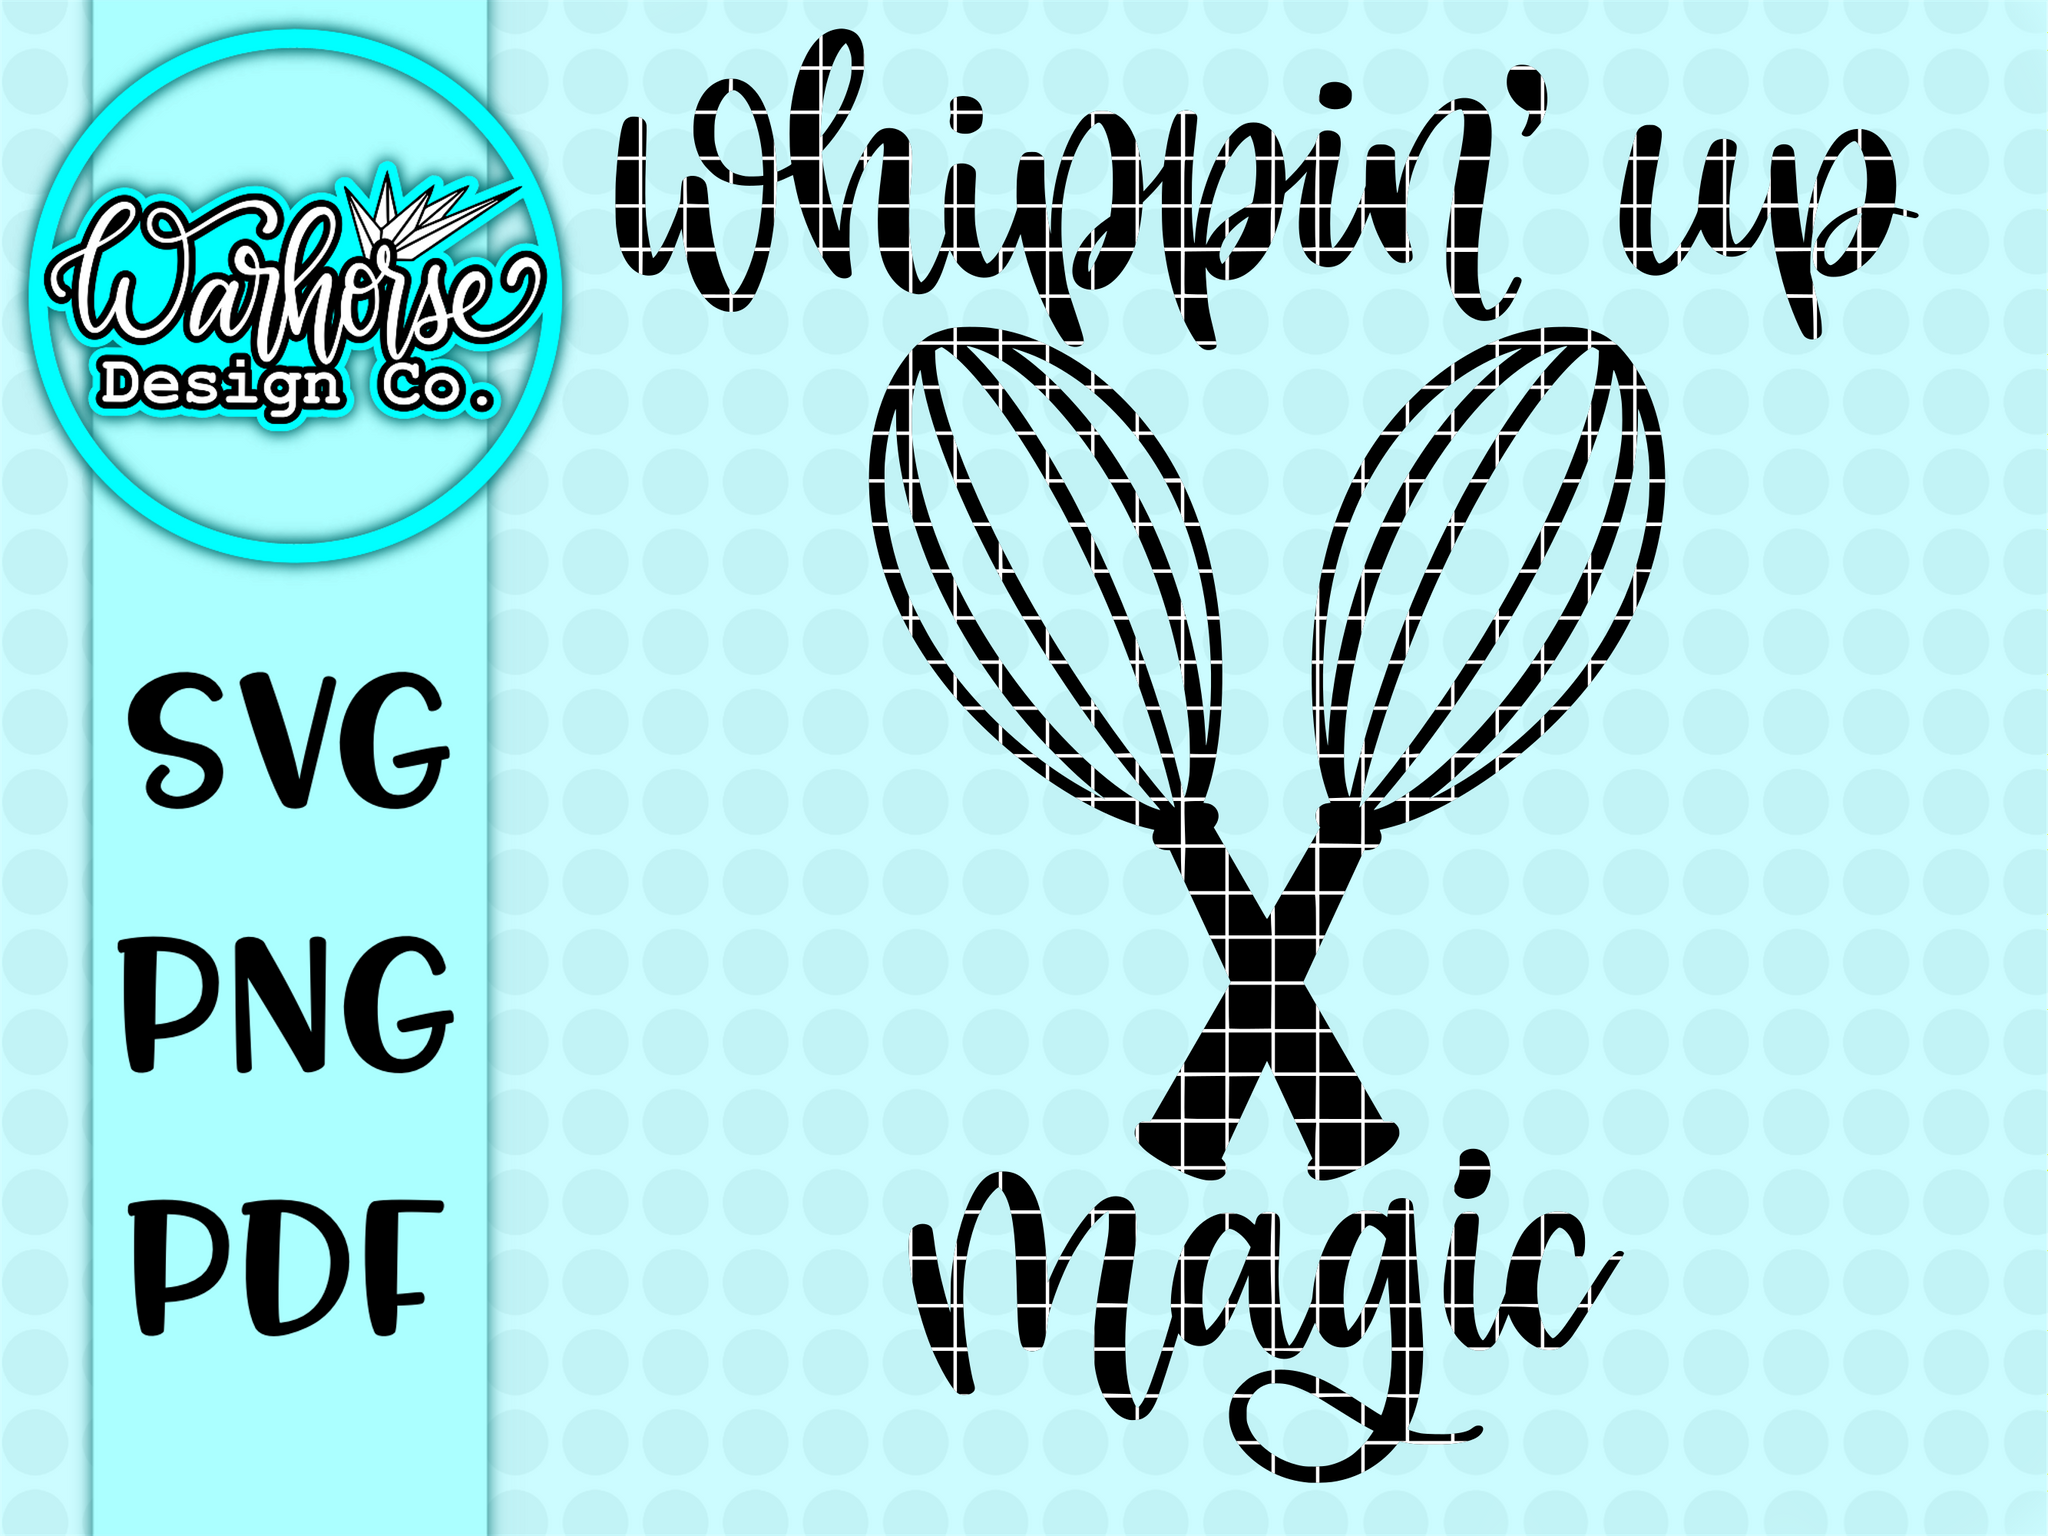 Whippin' up magic SVG/PNG/PDF